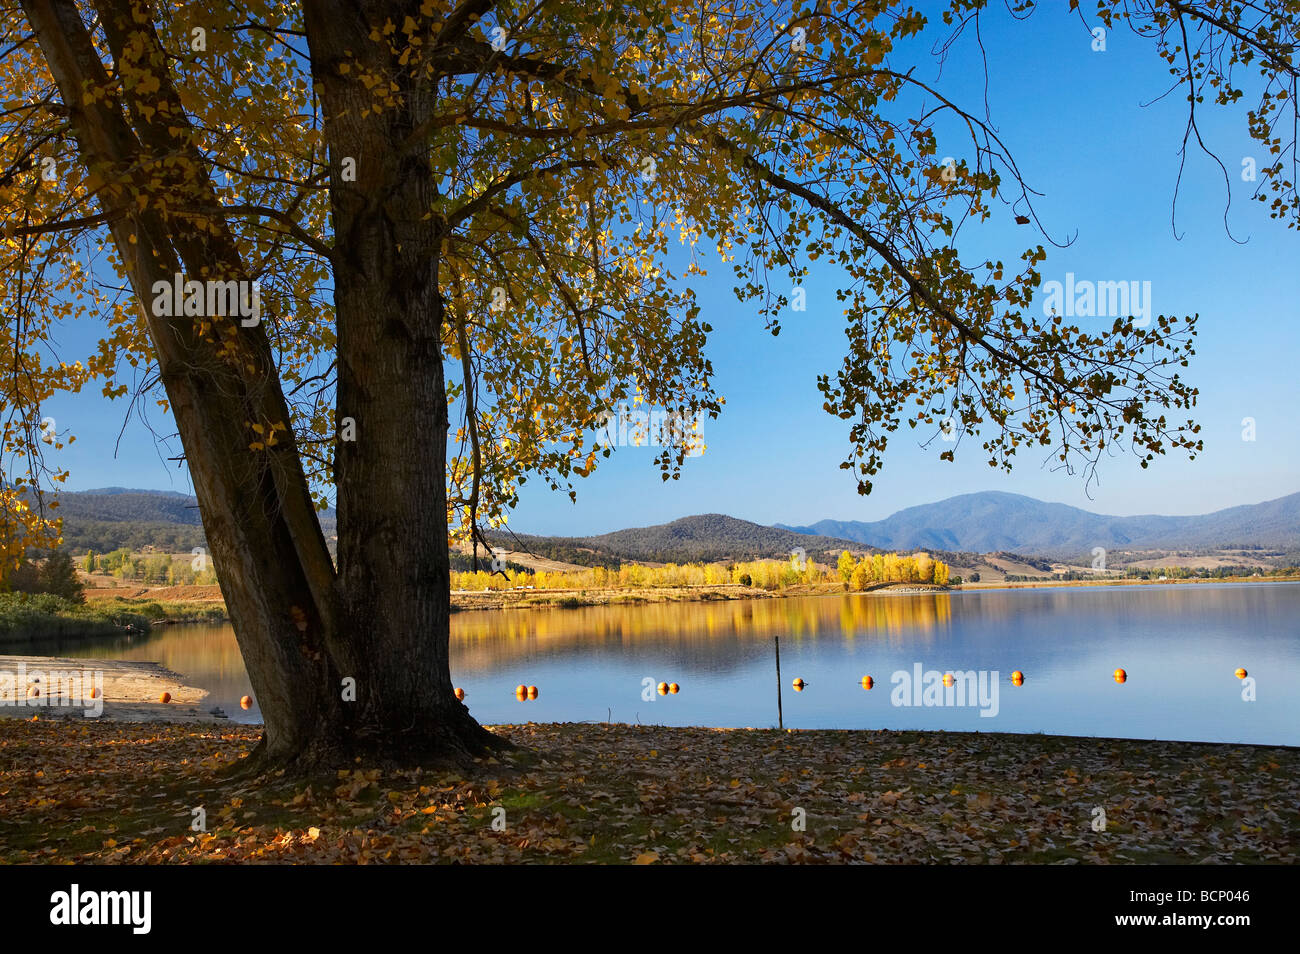 Trees at Boat Harbour Picnic Area Khancoban Pondage and Autumn Colour Snowy Mountains Southern New South Wales Australia - Stock Image